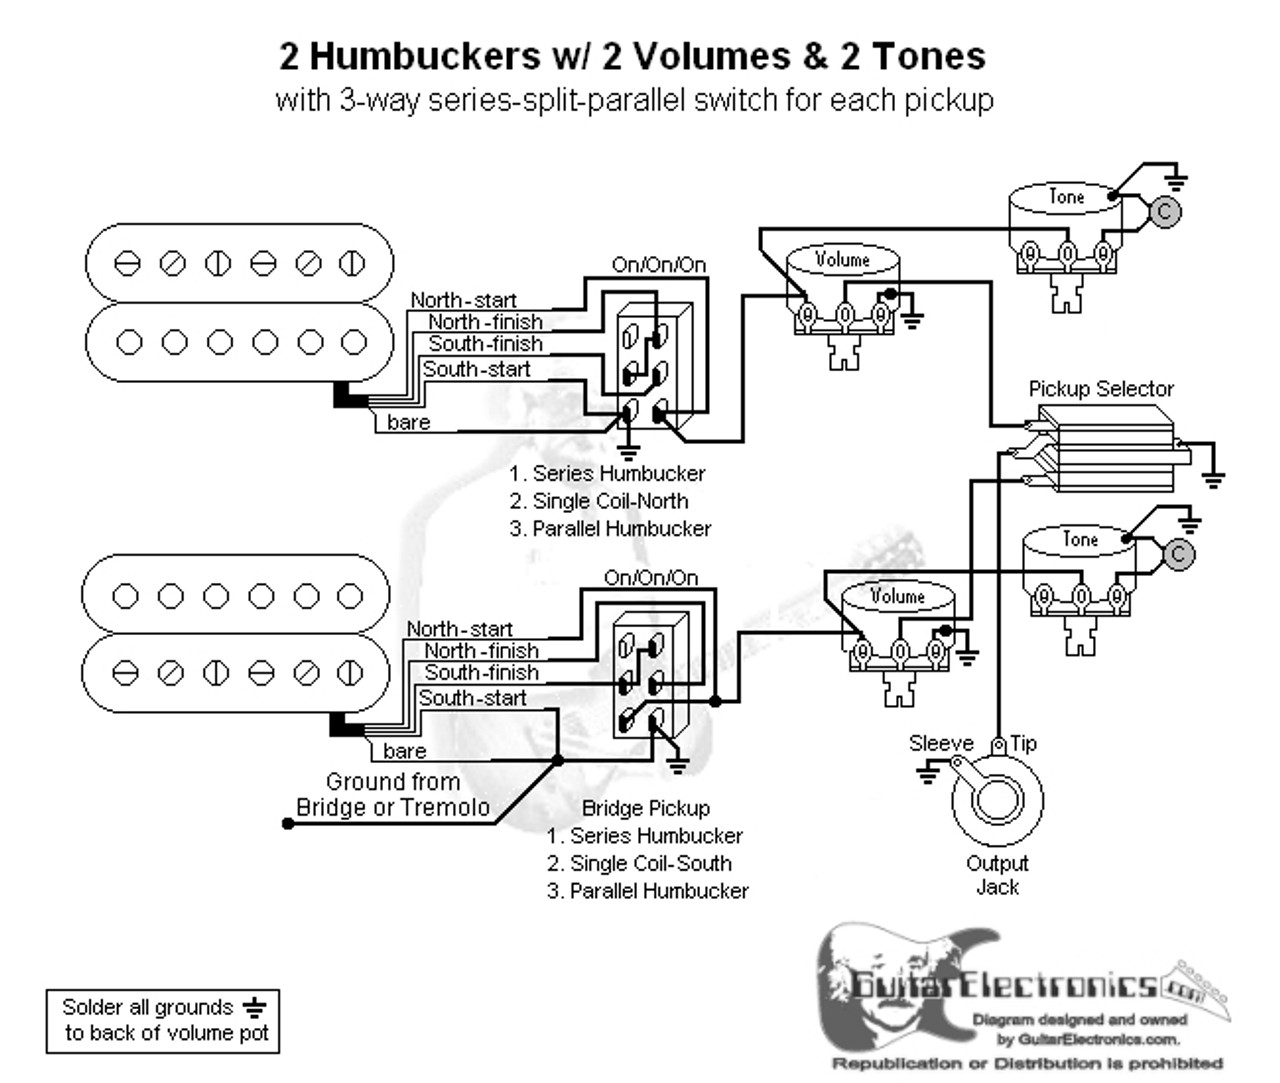 Humbuckers 3way Toggle Switch 1 Volume 2 Tones Series Parallel